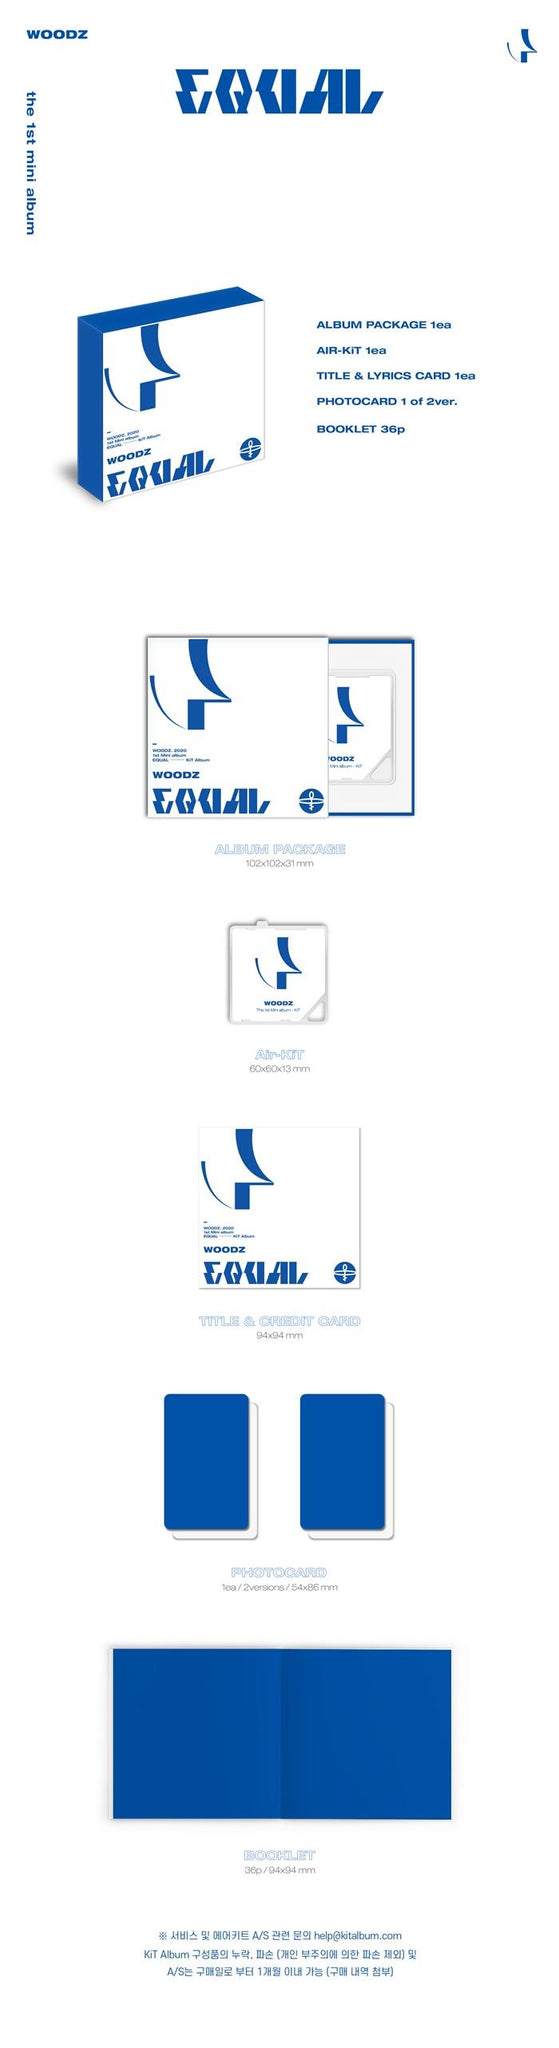 WOODZ 1st Mini Album - EQUAL Air KiT